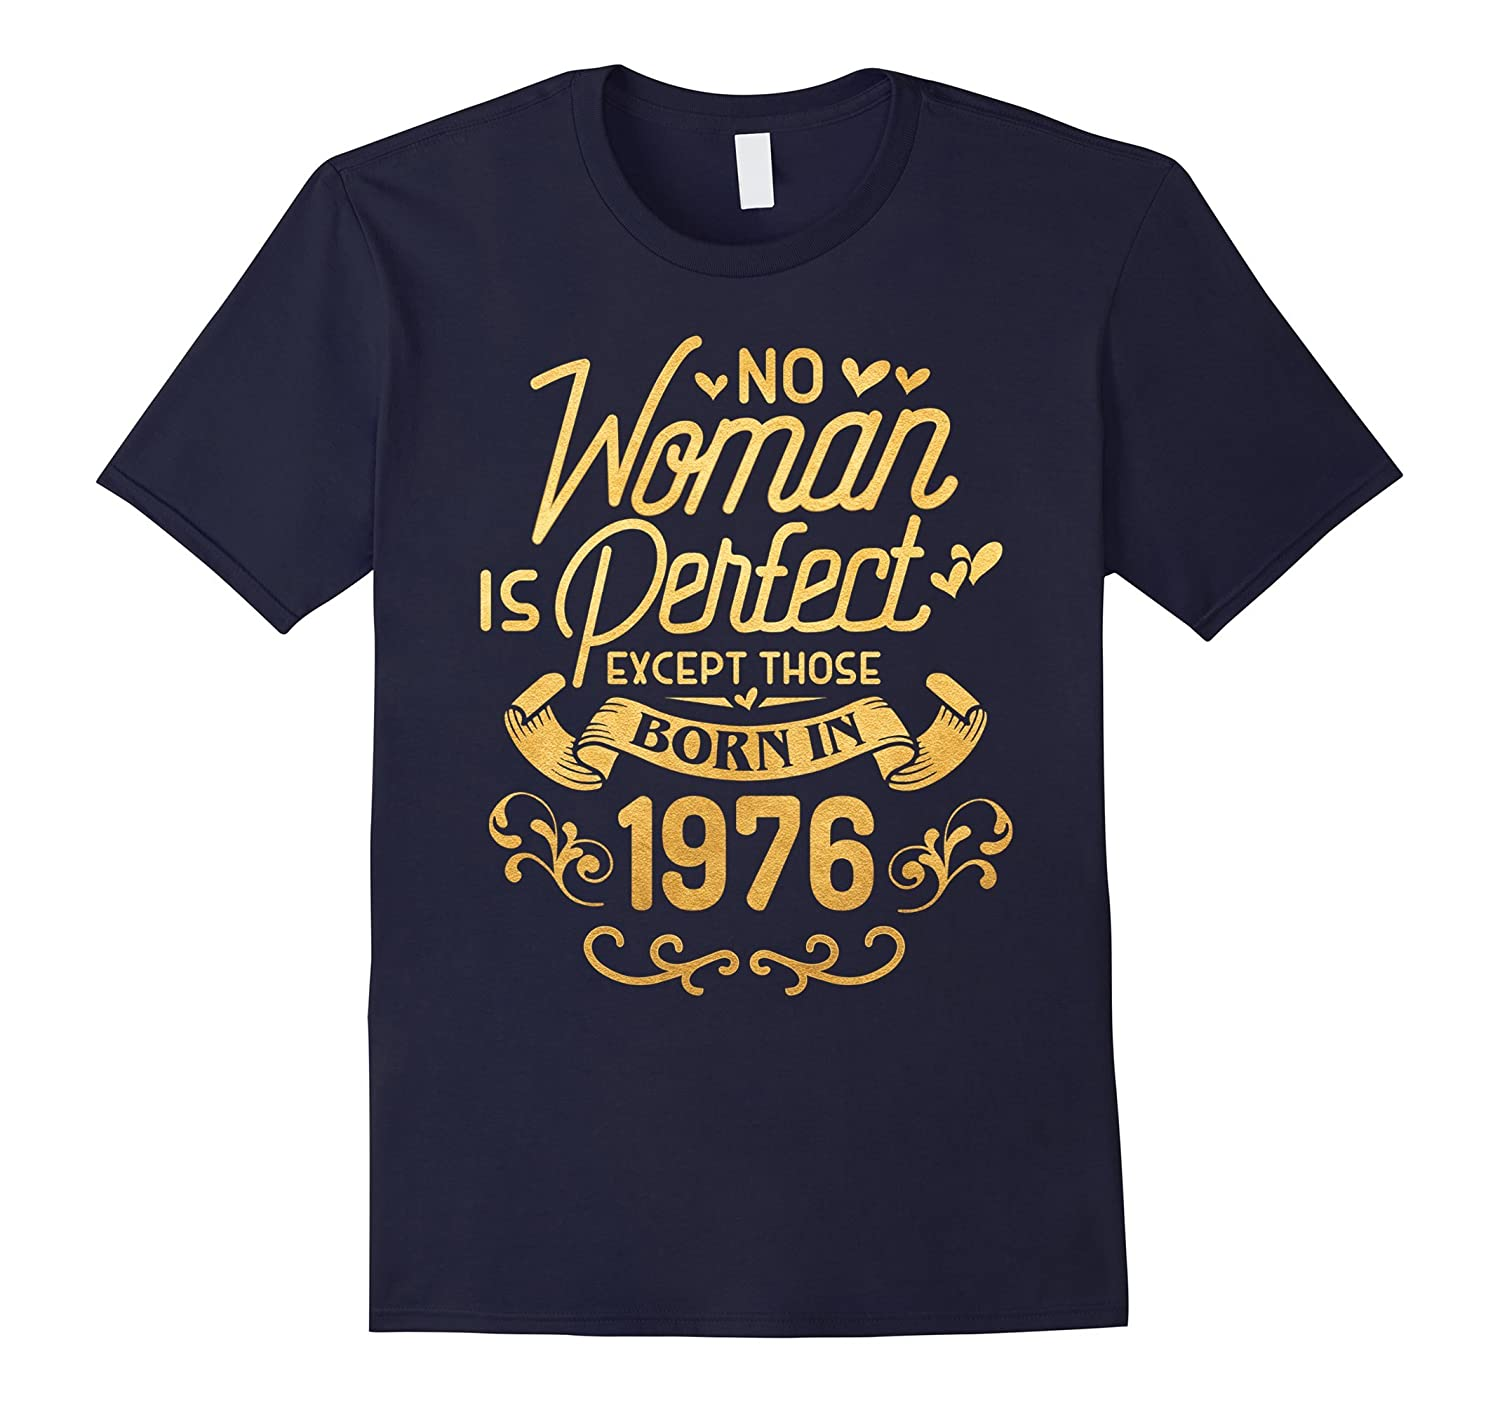 41st Birthday Gift TShirt Woman Is Perfect 1976, 41 Year Old-TH